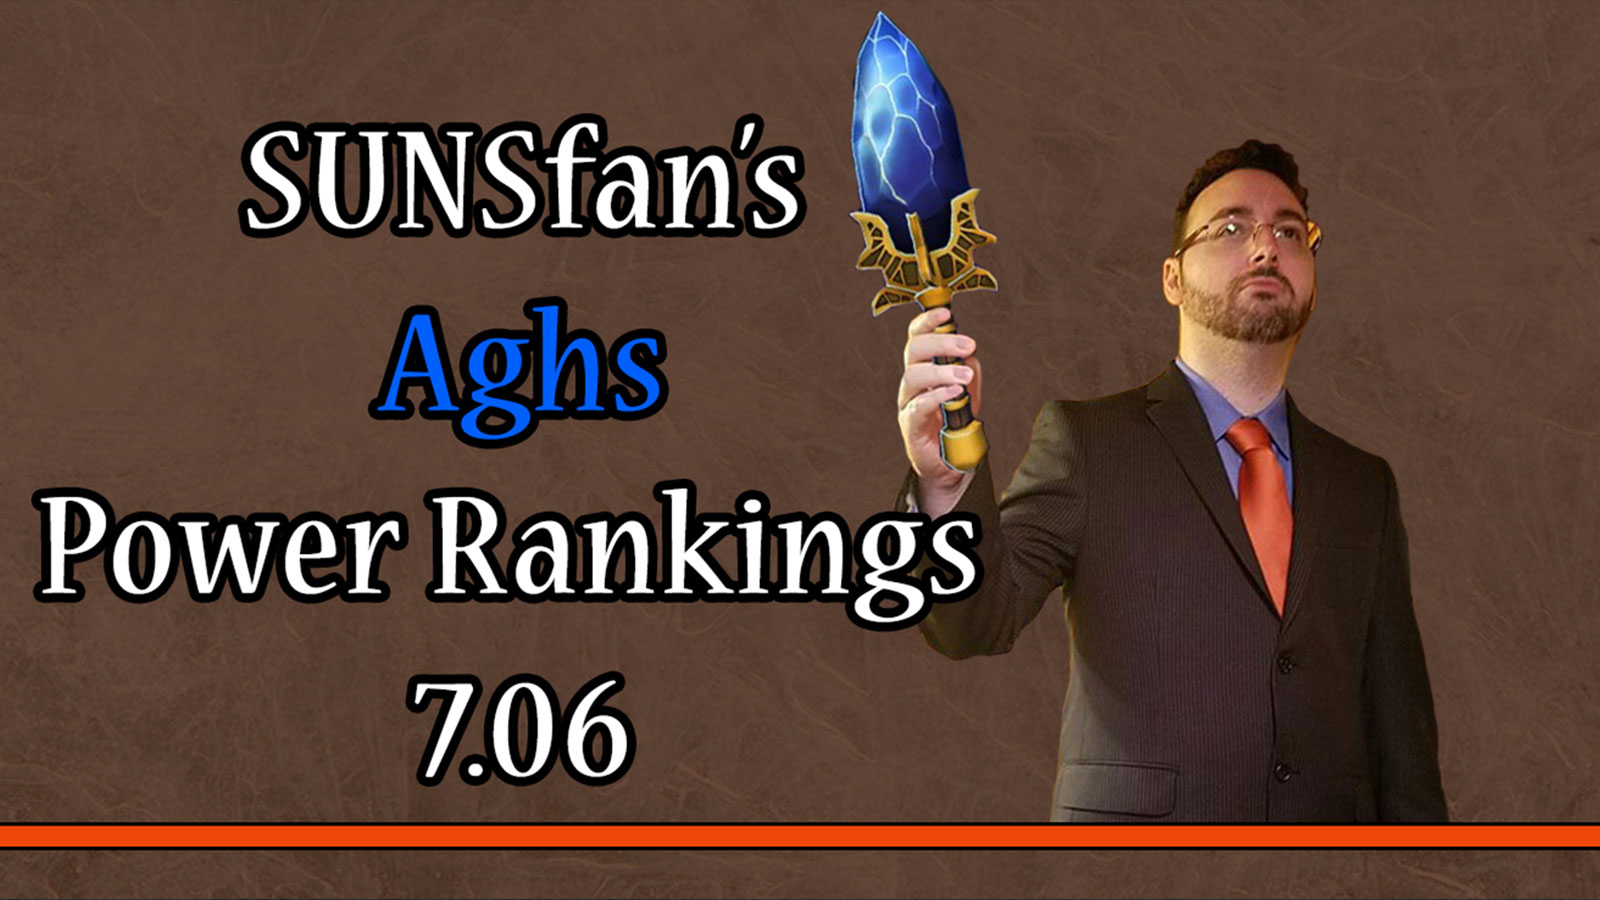 Sunsfan sunsfans aghs power rankings 706 fandeluxe Image collections